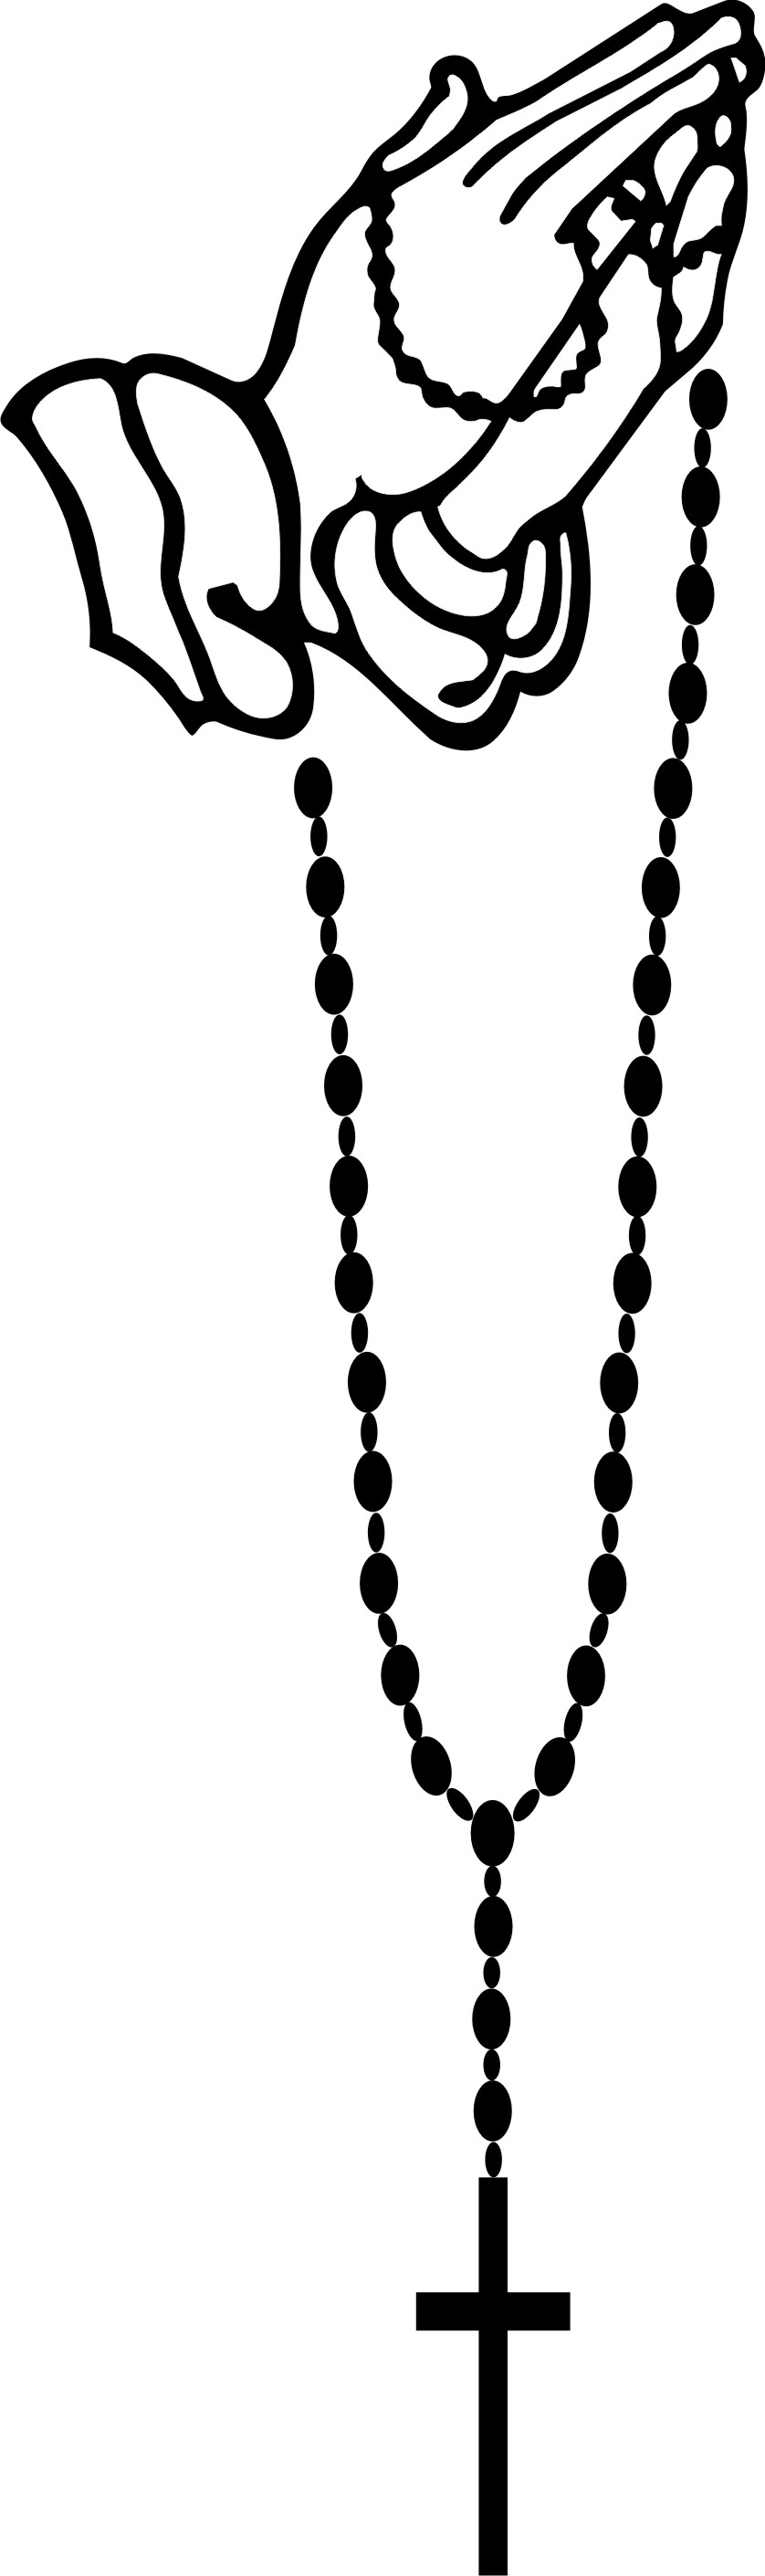 Rosary clipart rosario. Drawing pictures at getdrawings